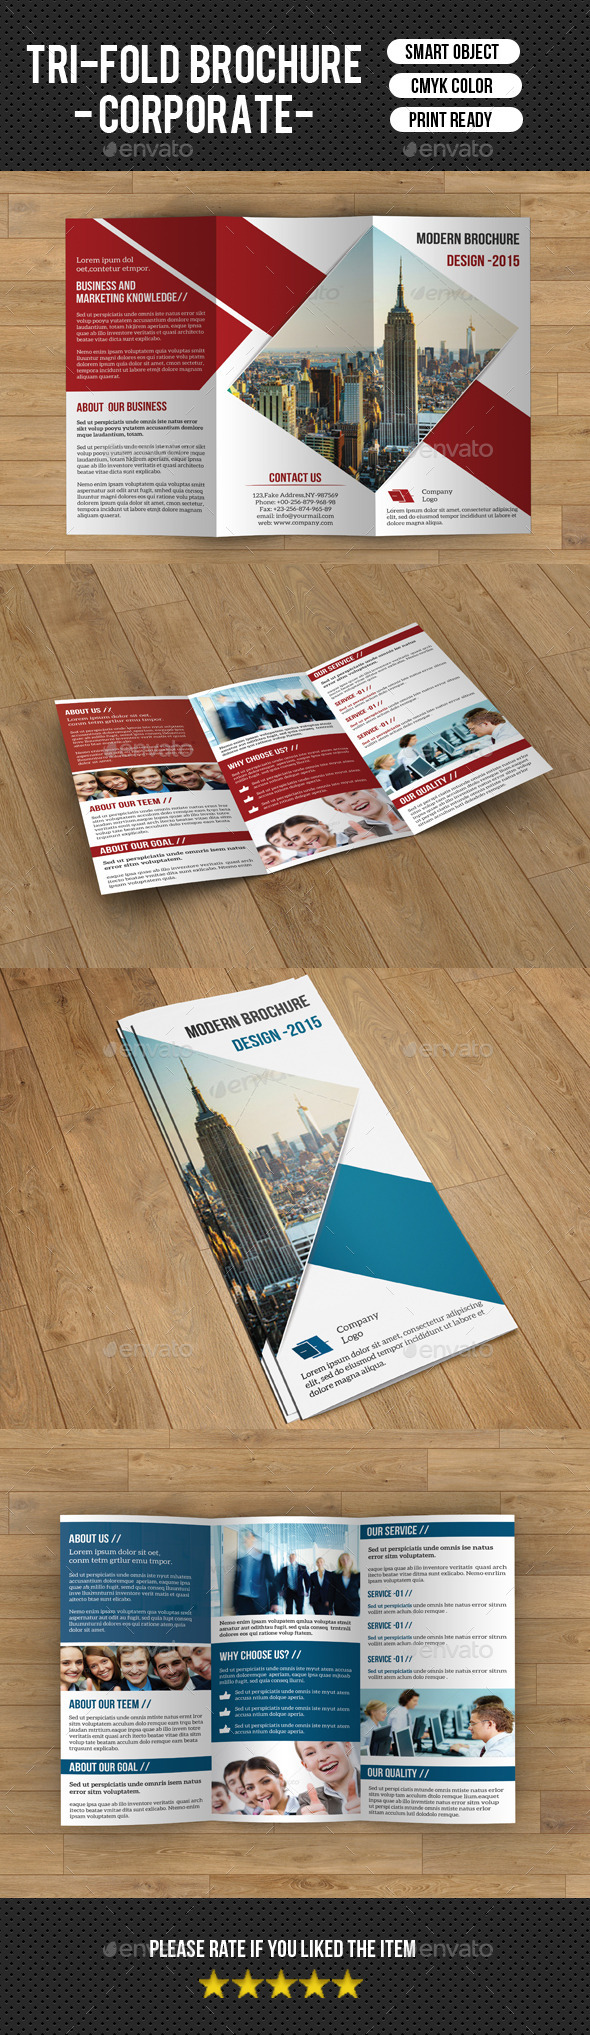 Trifold Business Brochure-V192 - Corporate Brochures